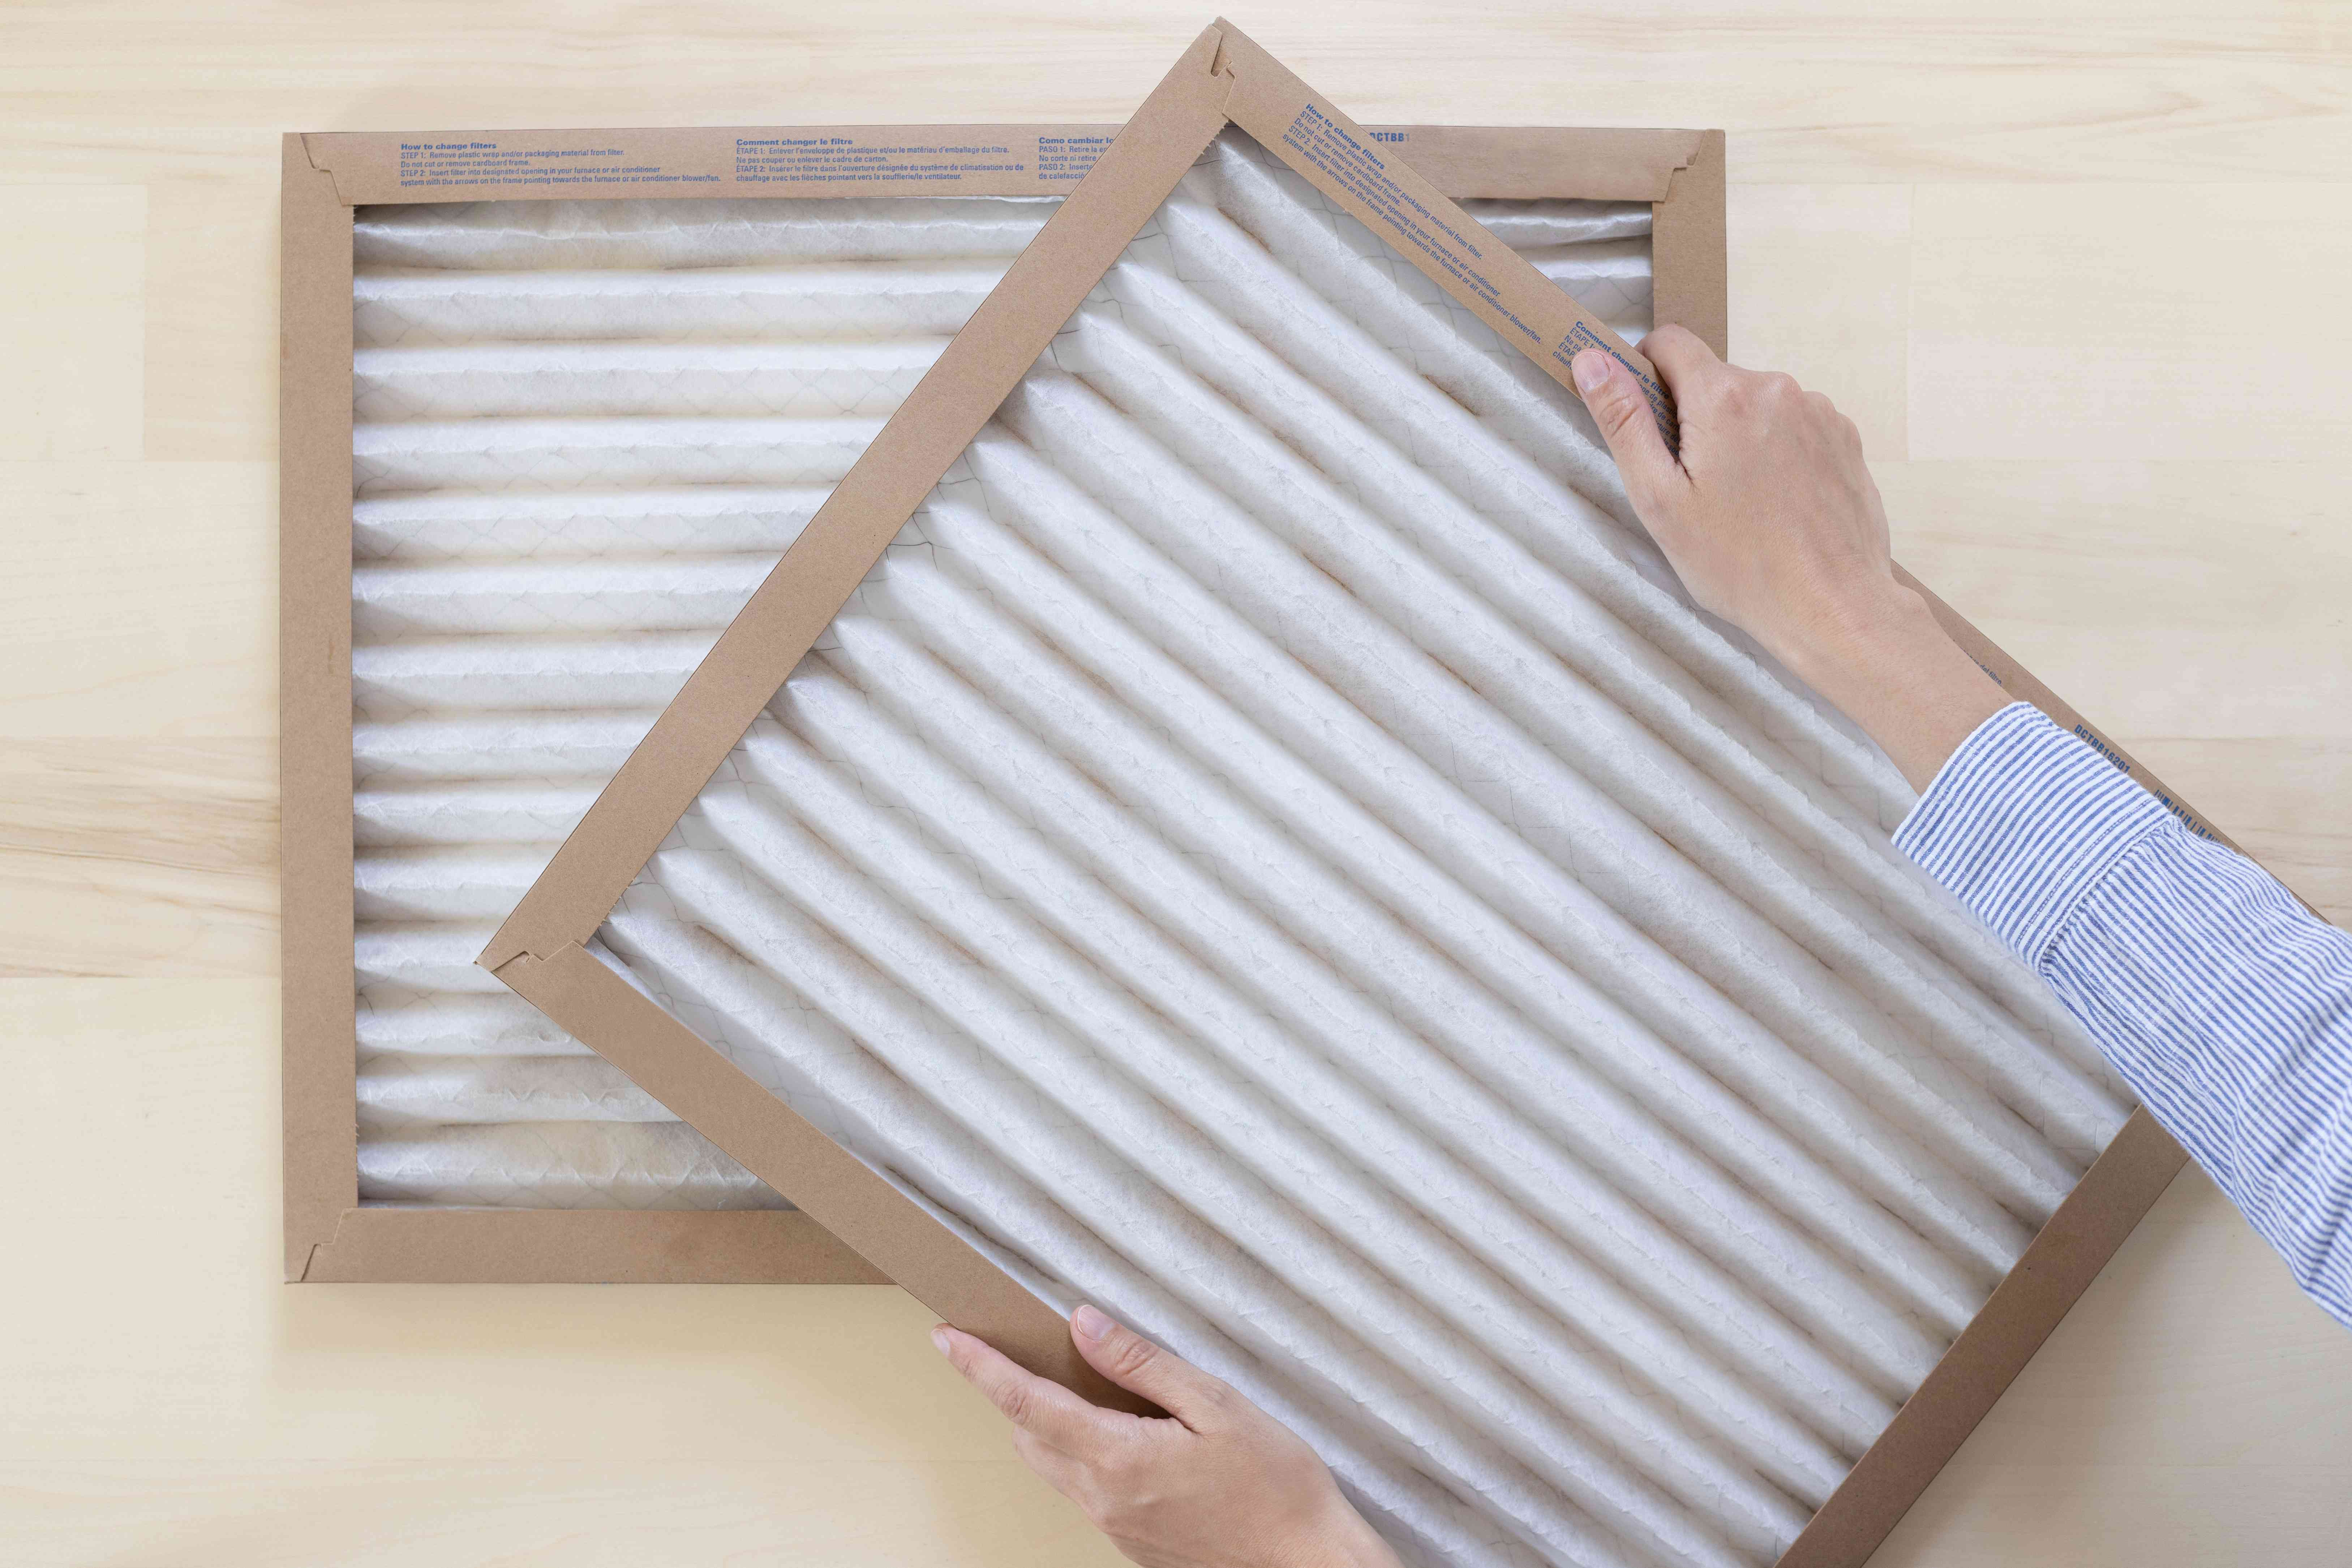 HVAC air filters stacked on each other to help lower electric bill